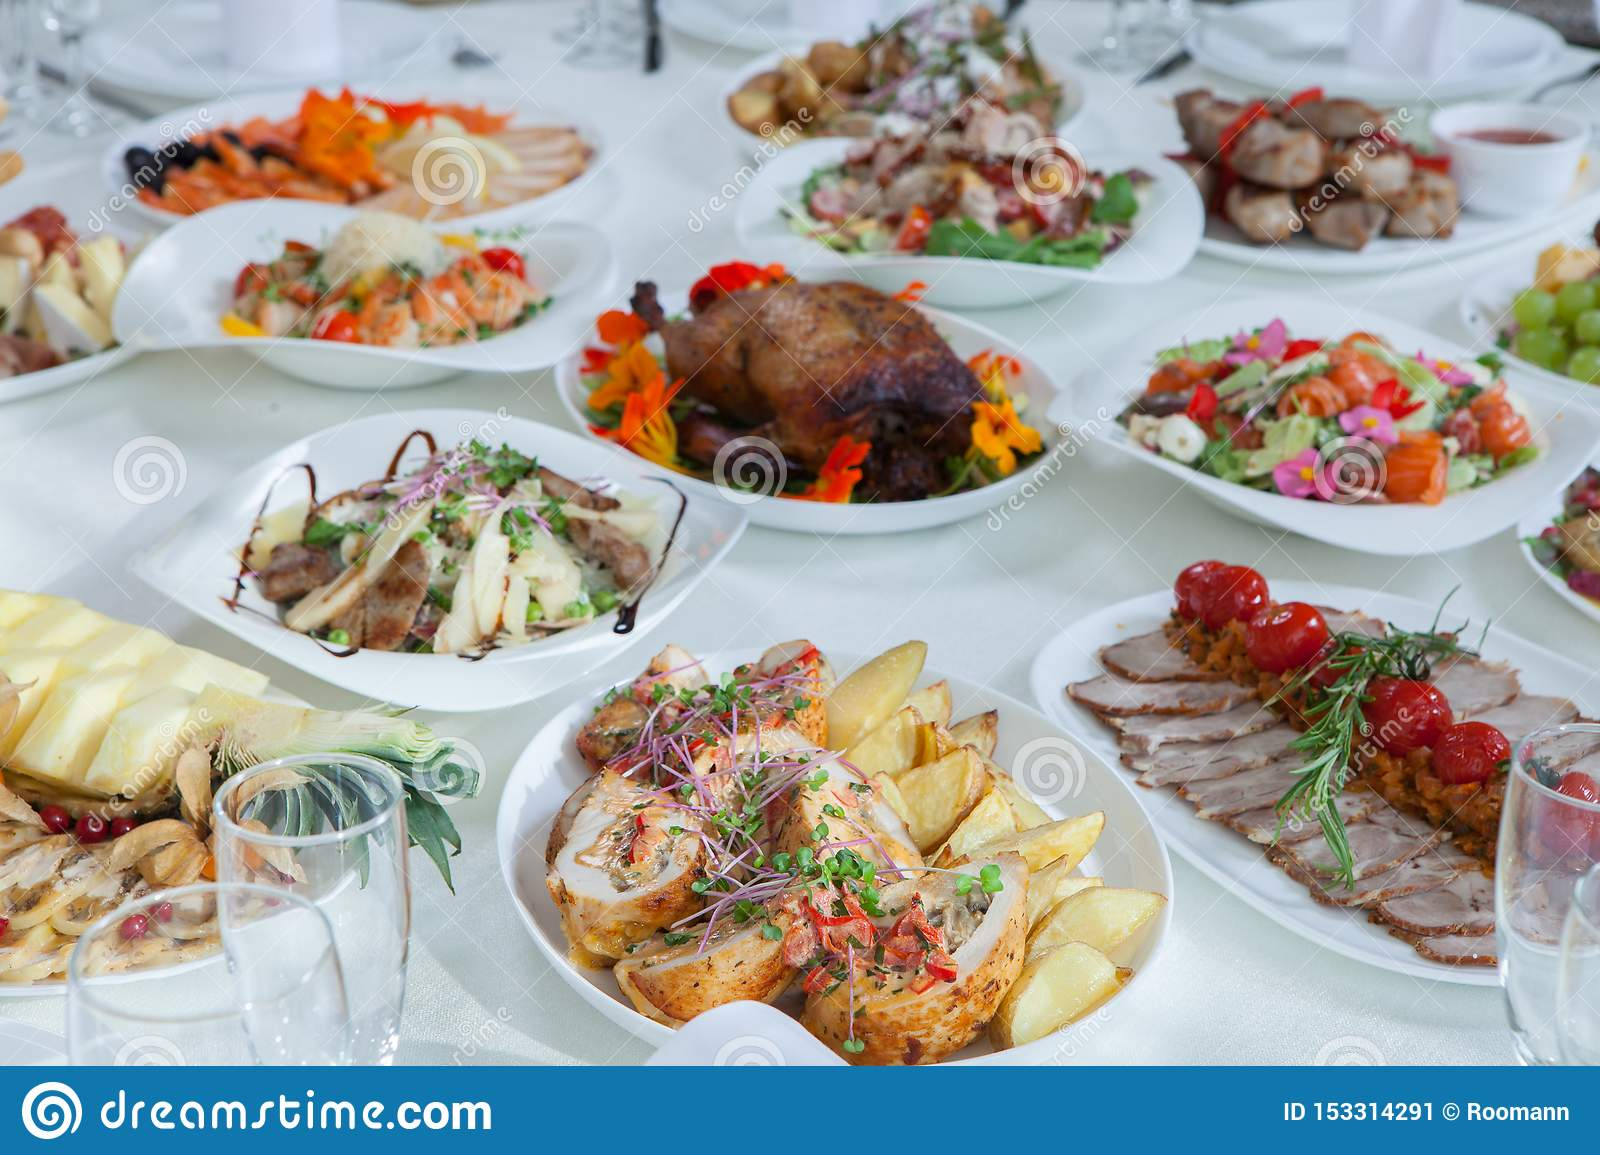 Beautiful Festive Table Served For Wedding Celebration Dinner At Home Or Restaurant Interior Full Of Food A Stock Image Business Fresh 153314291